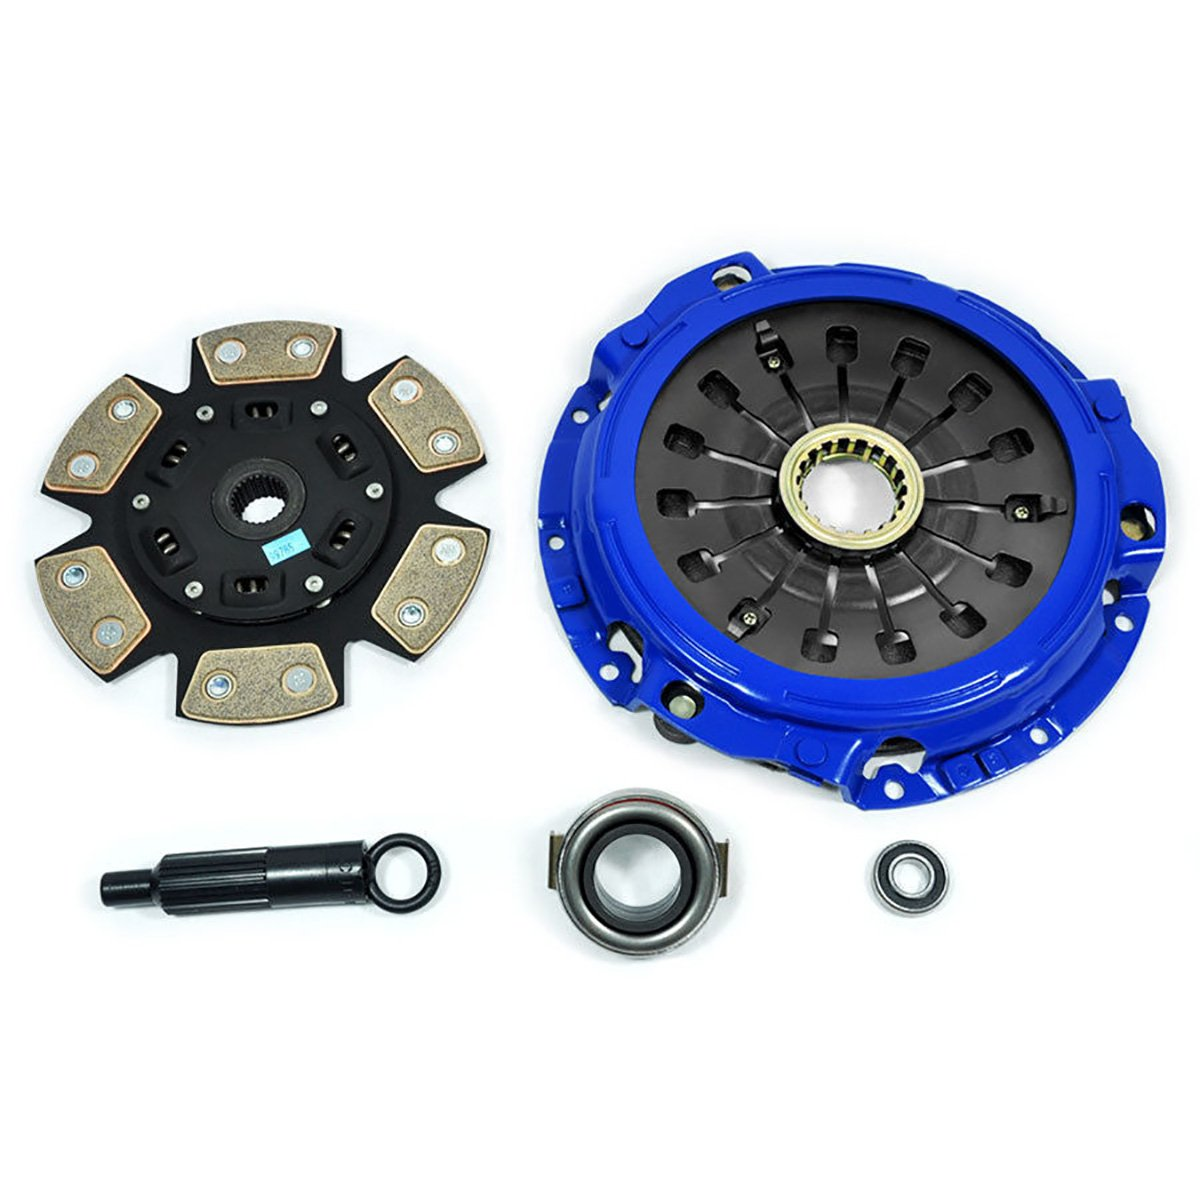 Amazon.com: PPC STAGE 3 CLUTCH KIT 2000-2005 MITSUBISHI ECLIPSE GT GTS 3.0L V6 SOHC SPYDER: Automotive